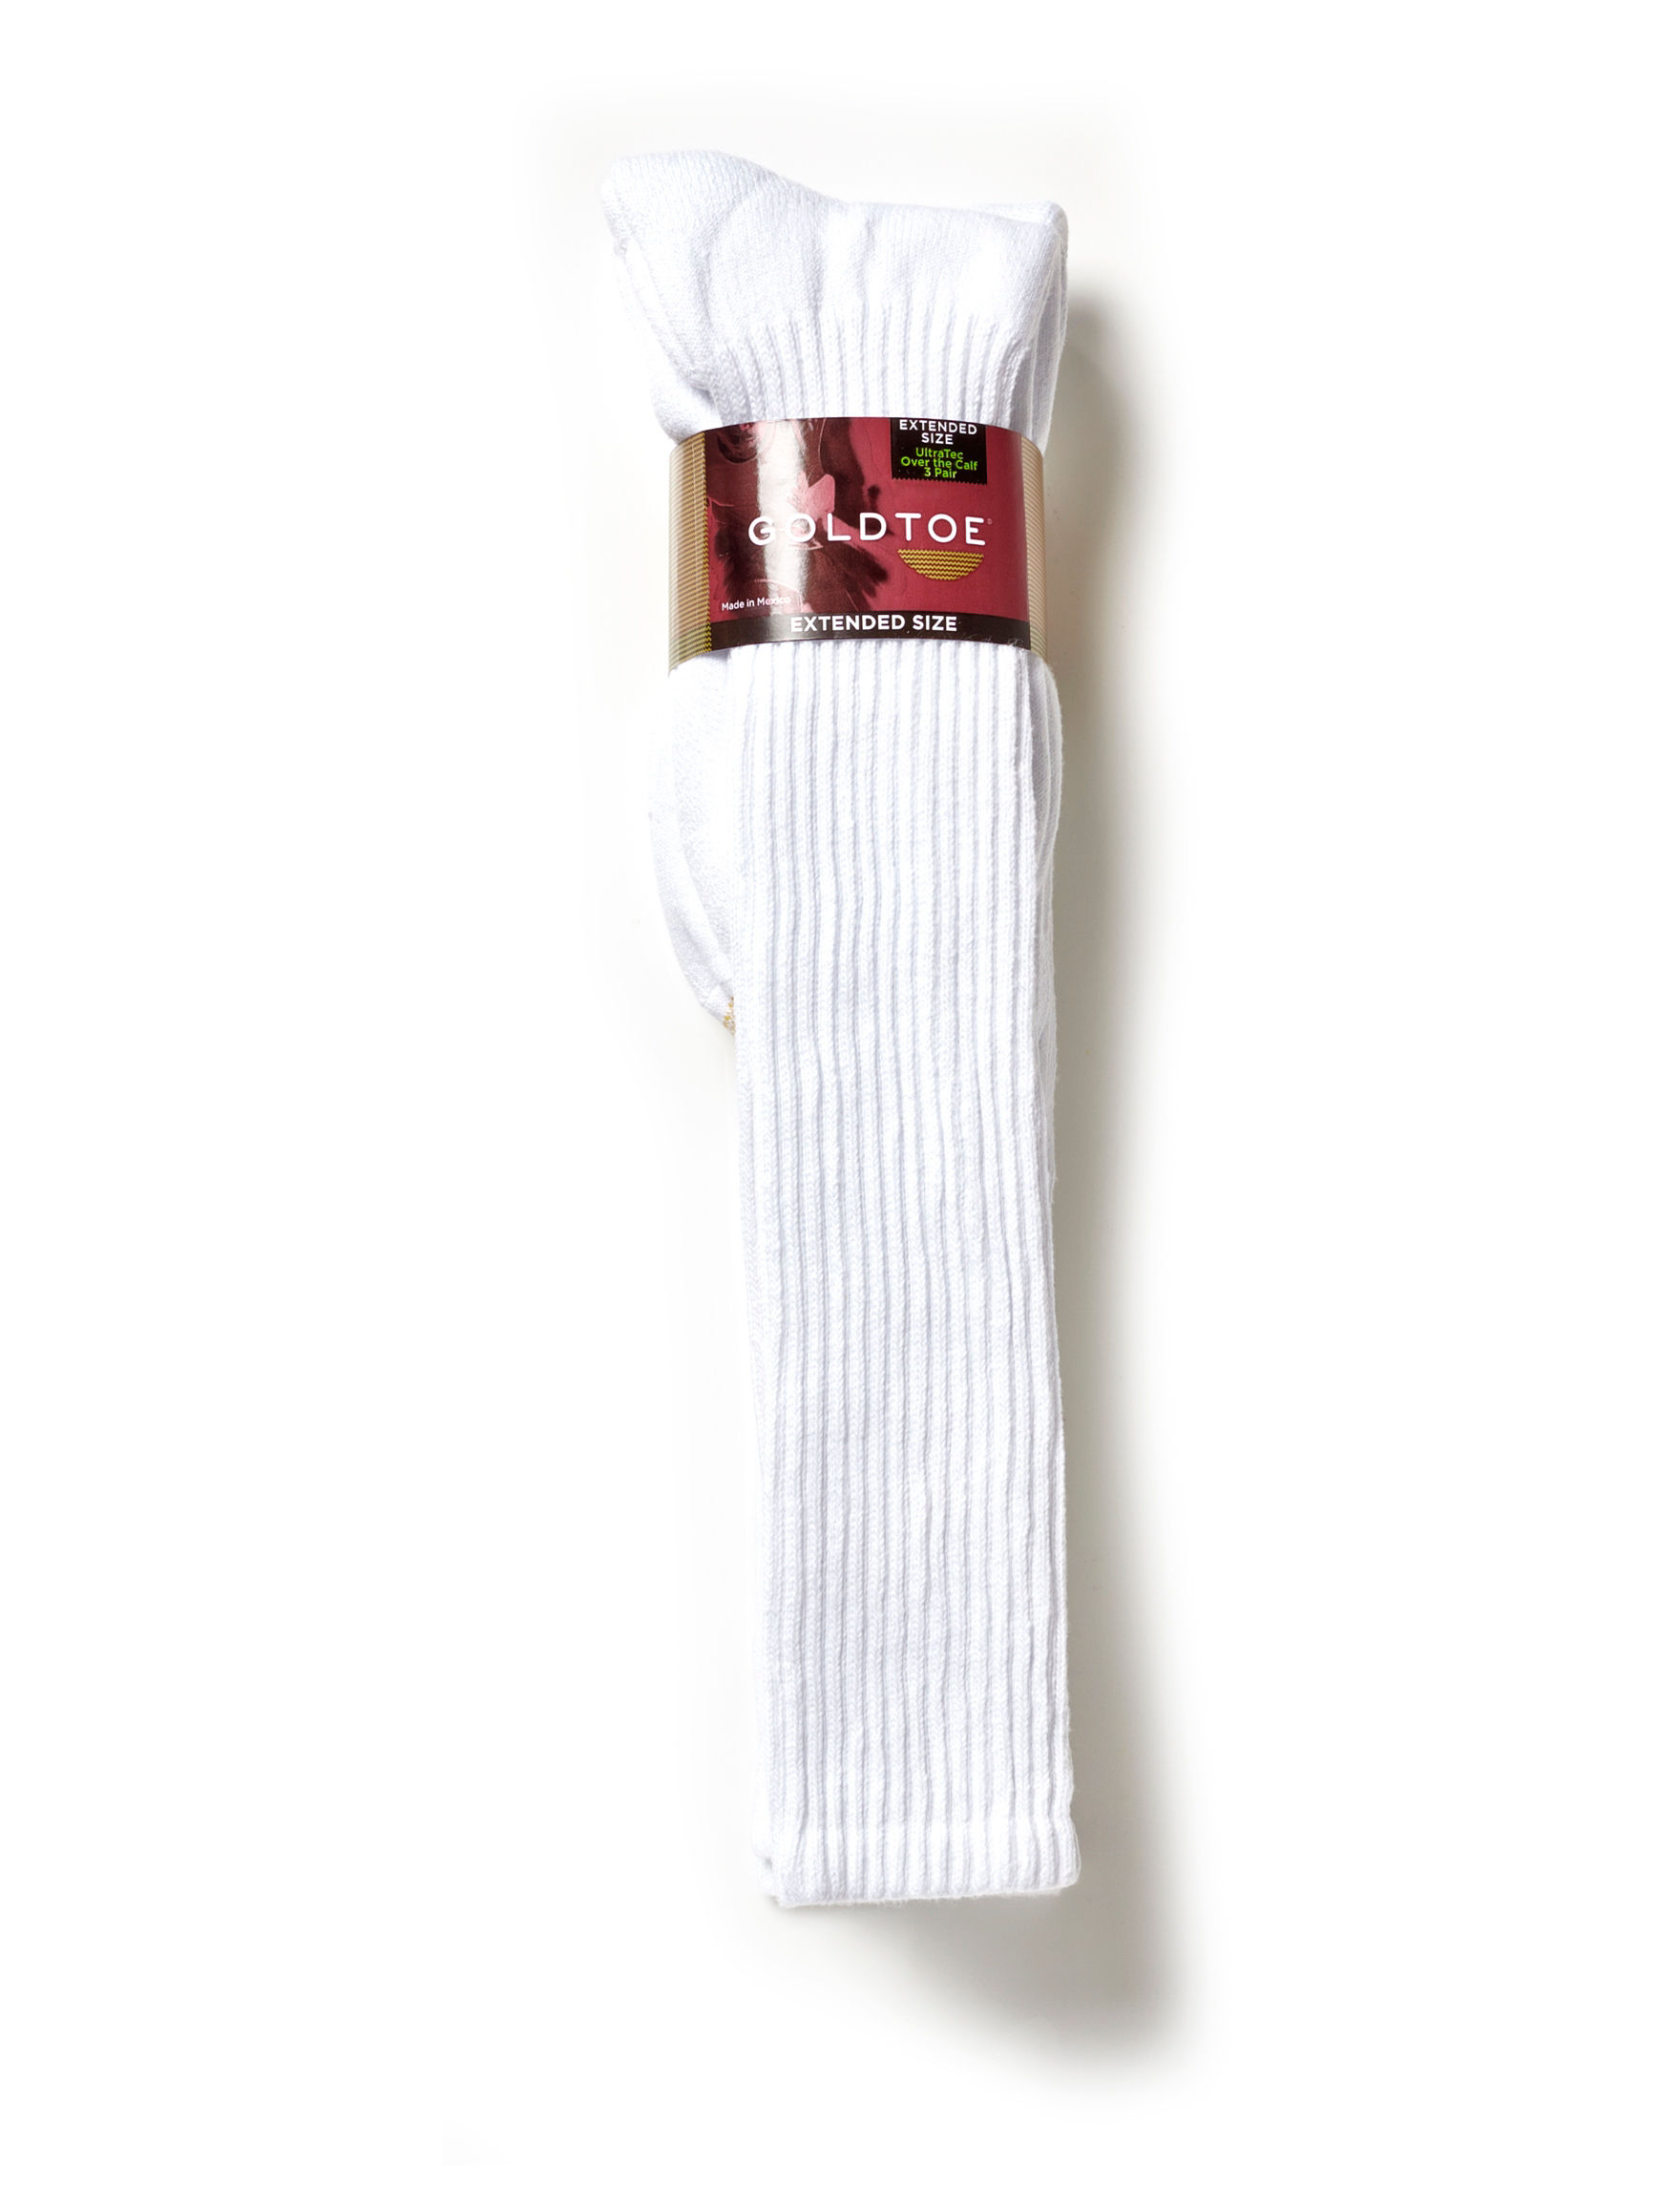 Gold Toe White Socks